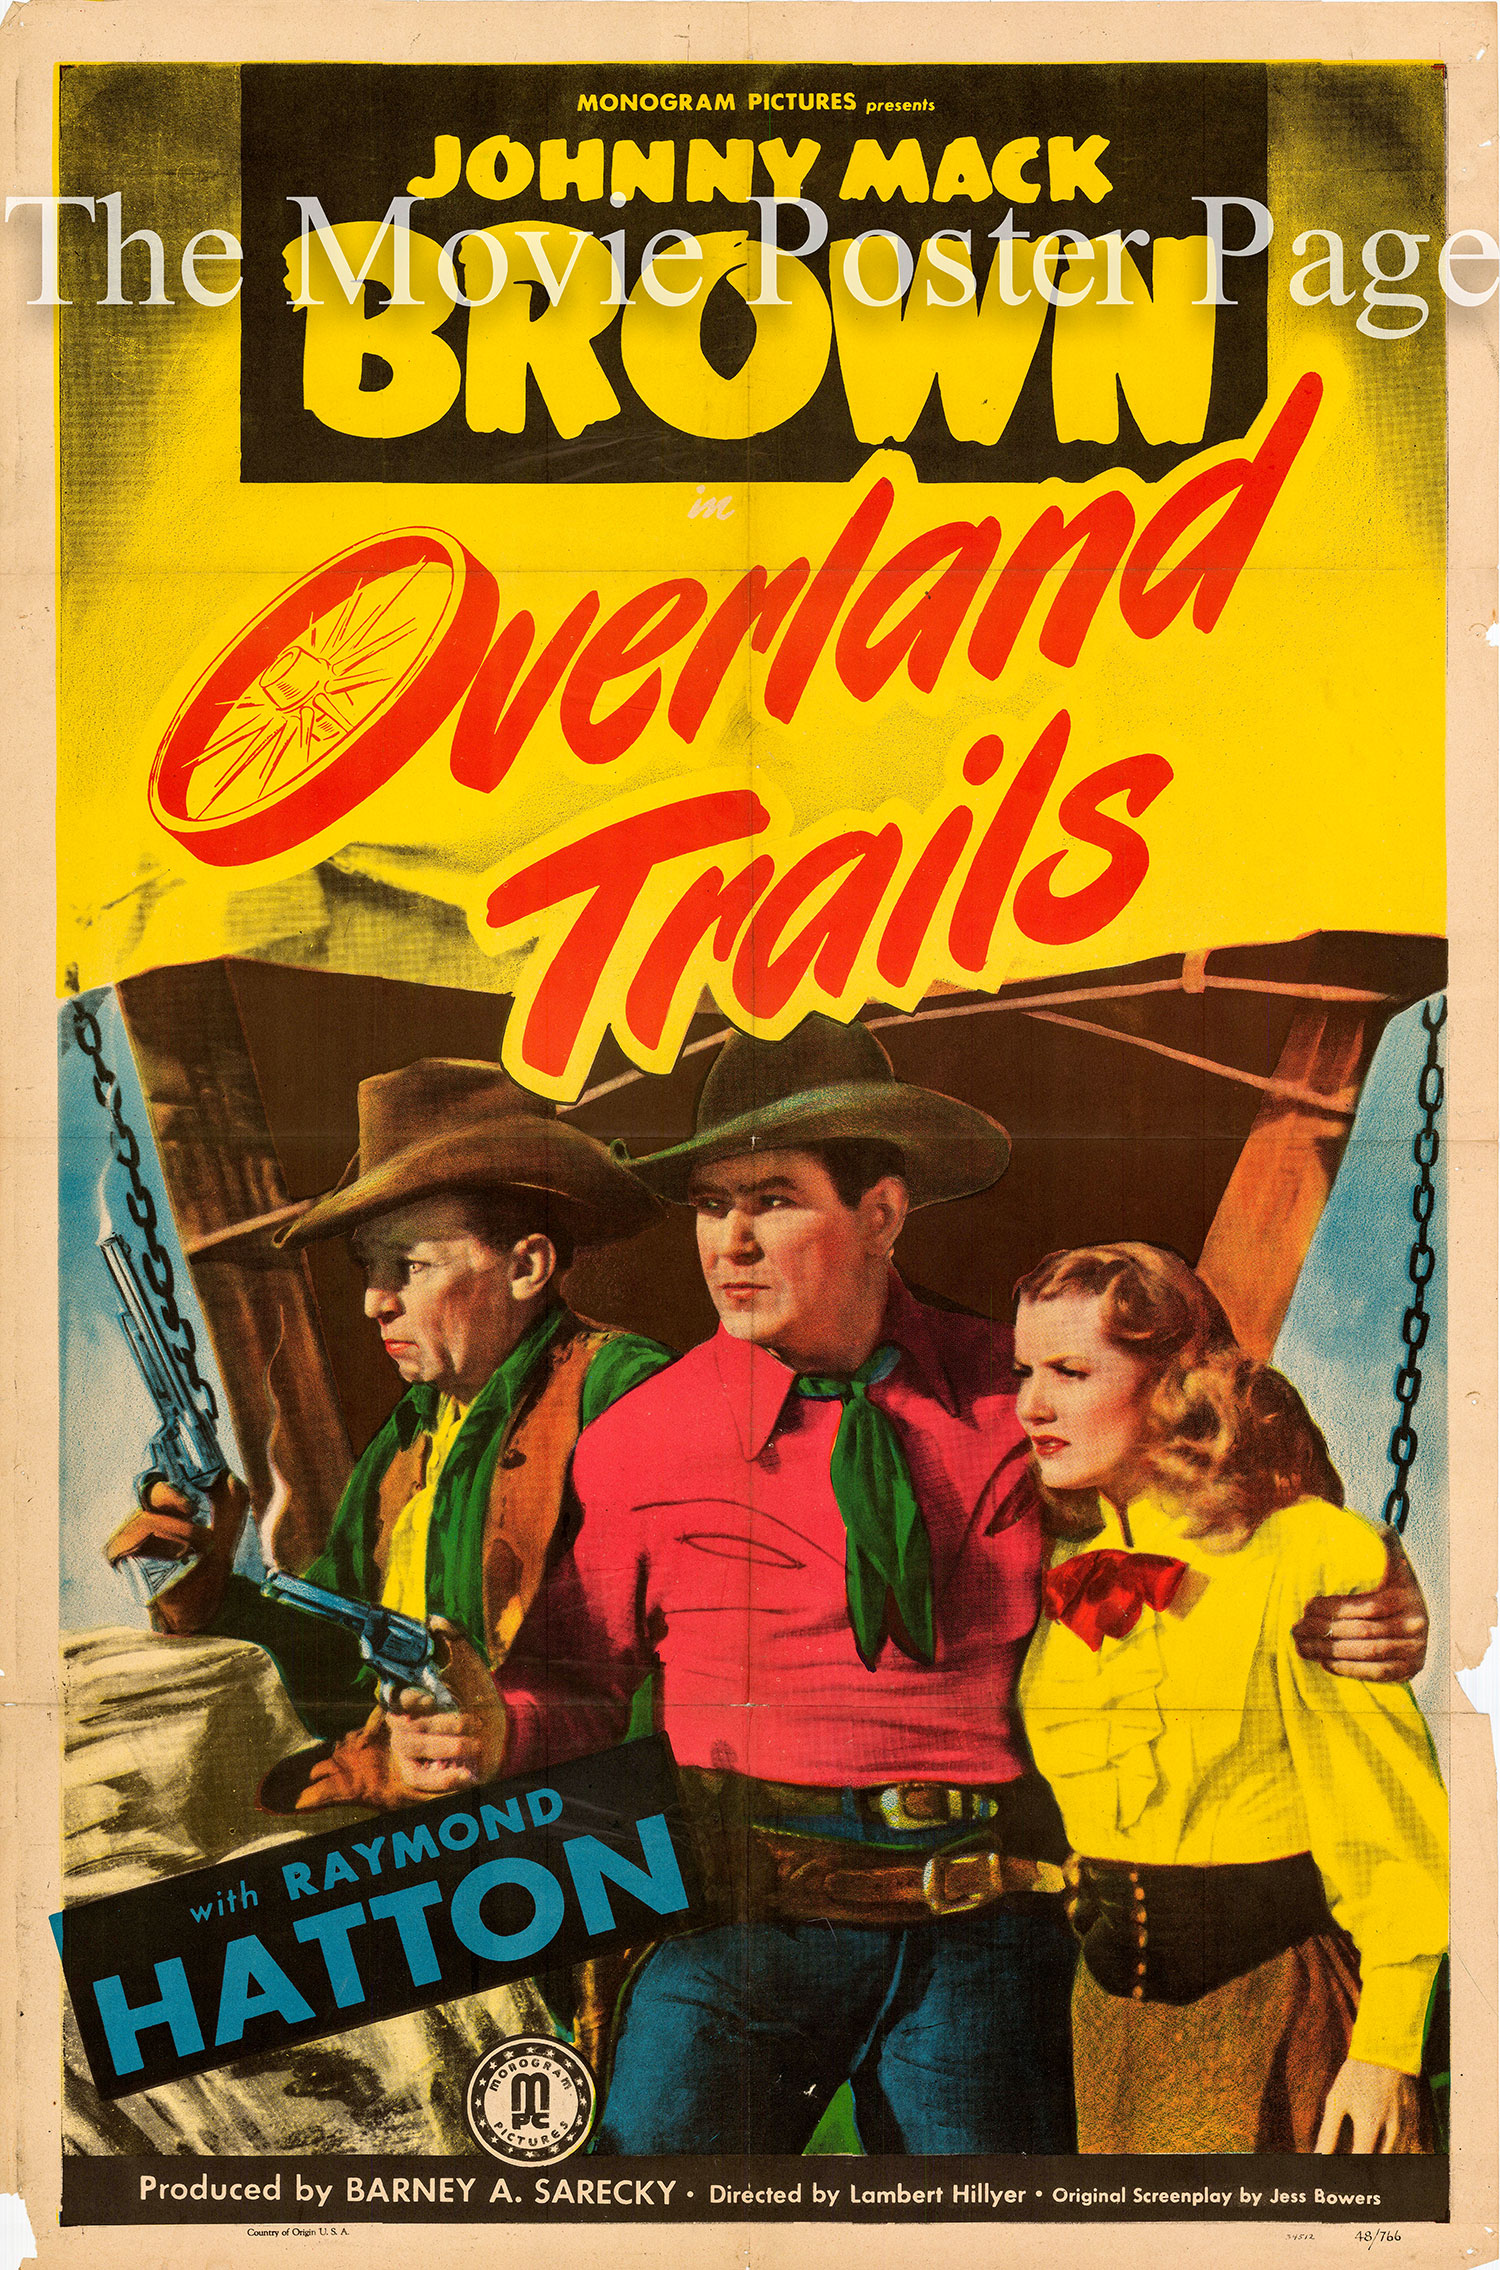 Pictured is a US one-sheet promotional poster for the 1948 Lambert Hillyer film Overland Trails starring Johnny Mack Brown.